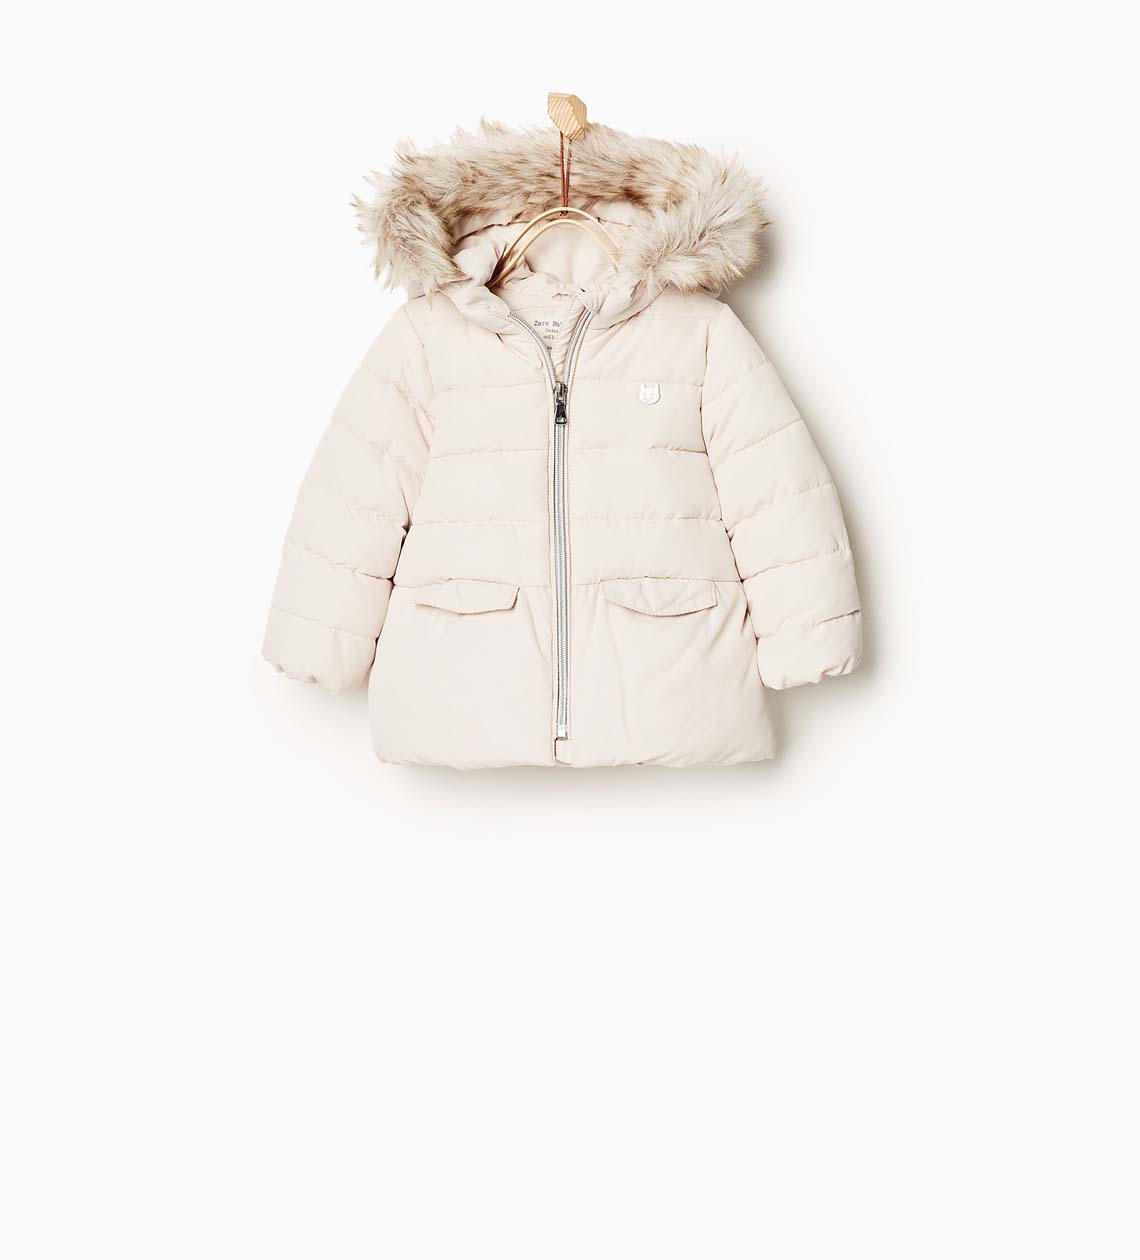 Keeping Little Ones Warm And Adorable This Winter Bloved